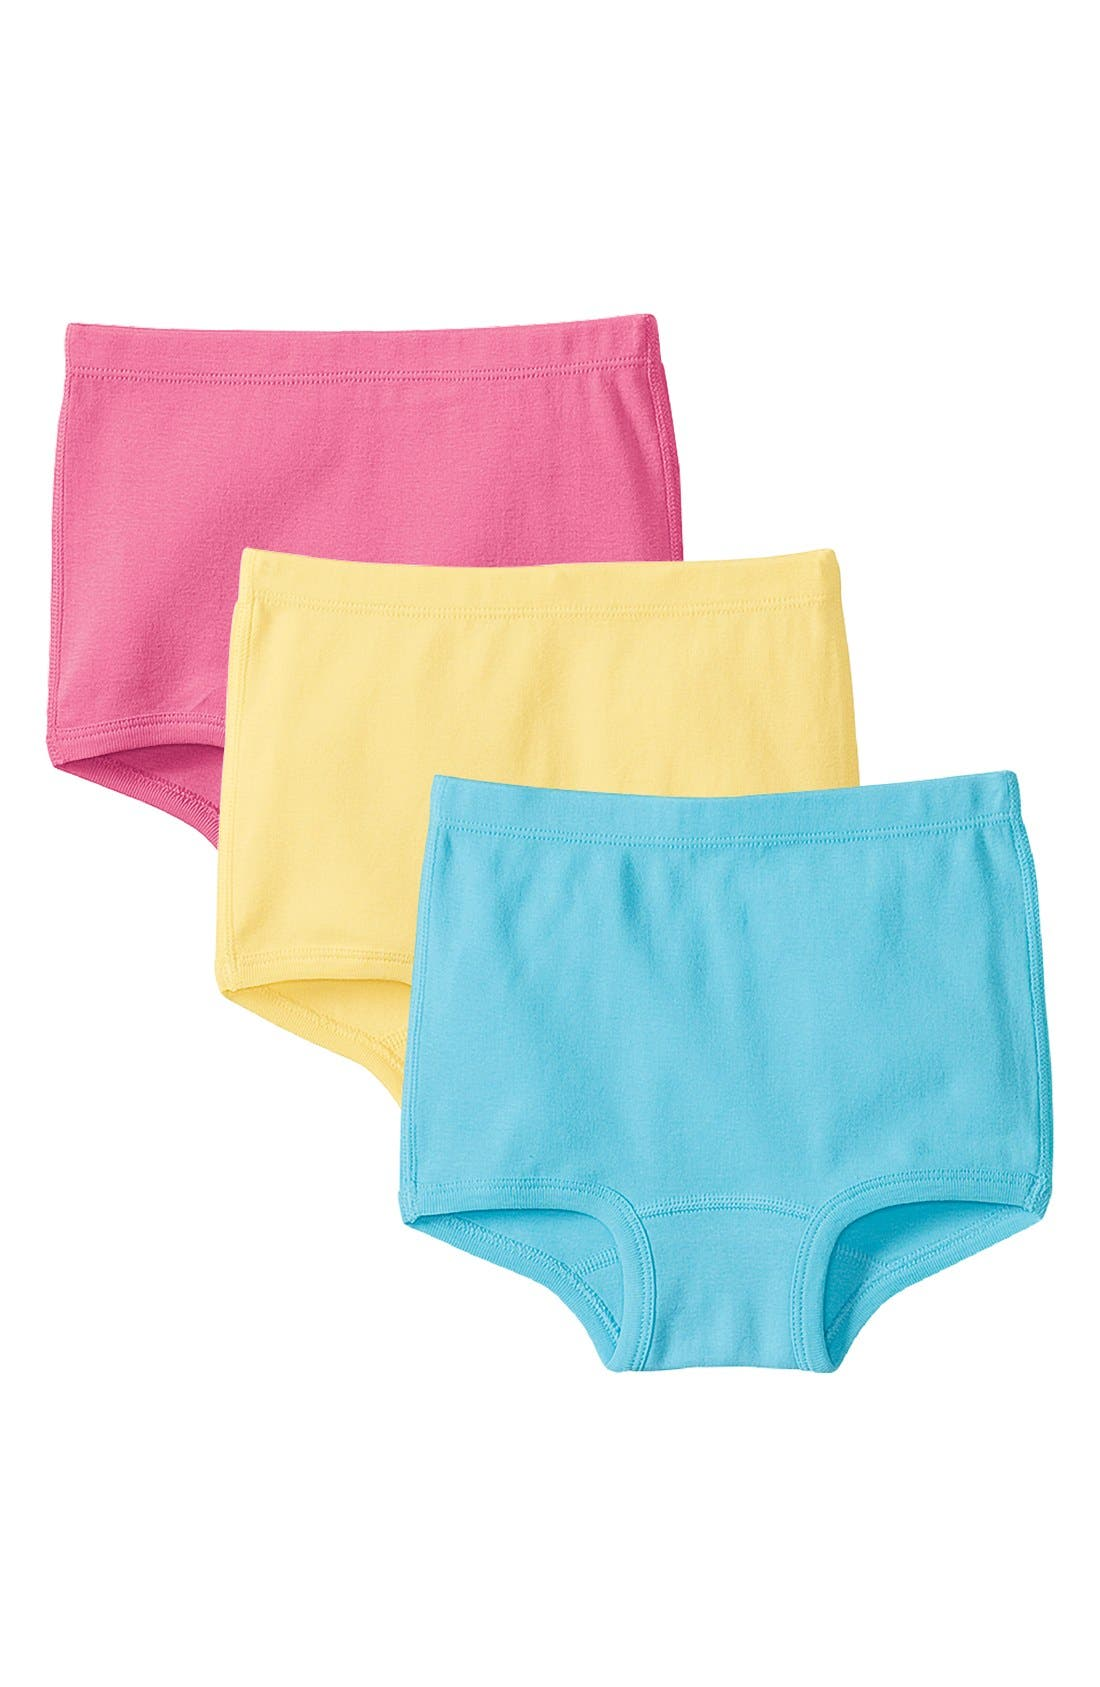 Alternate Image 1 Selected - Hanna Andersson Organic Cotton Brief Underwear (3-Pack) (Little Girls & Big Girls)